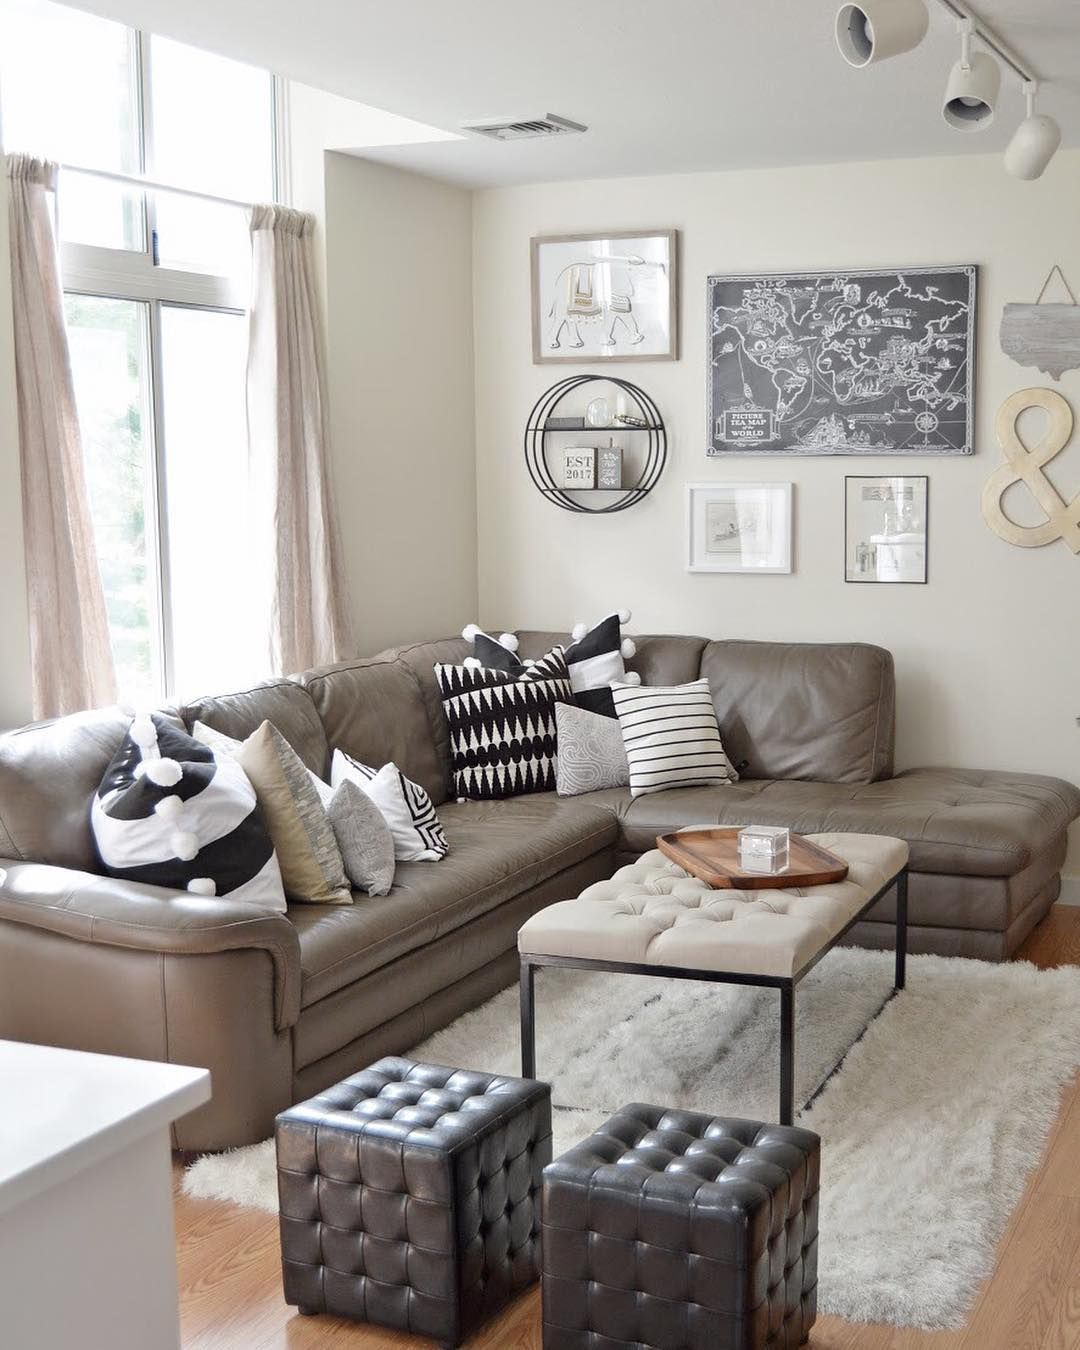 Help Me Decorate My Living Room: Current Living Room Situation But It's About To Change